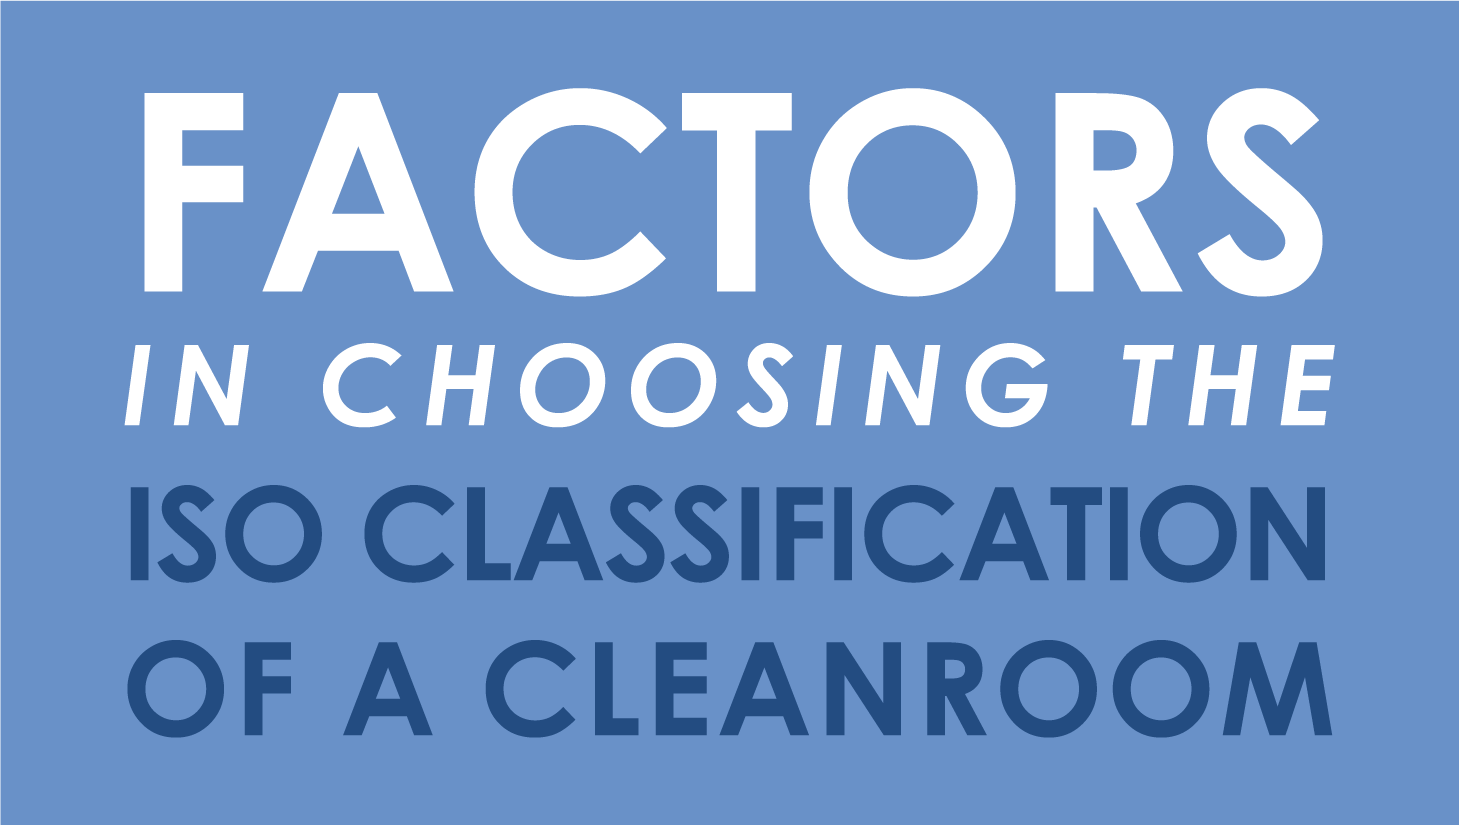 LabHub   Factors in choosing the ISO Classification of a Cleanroom